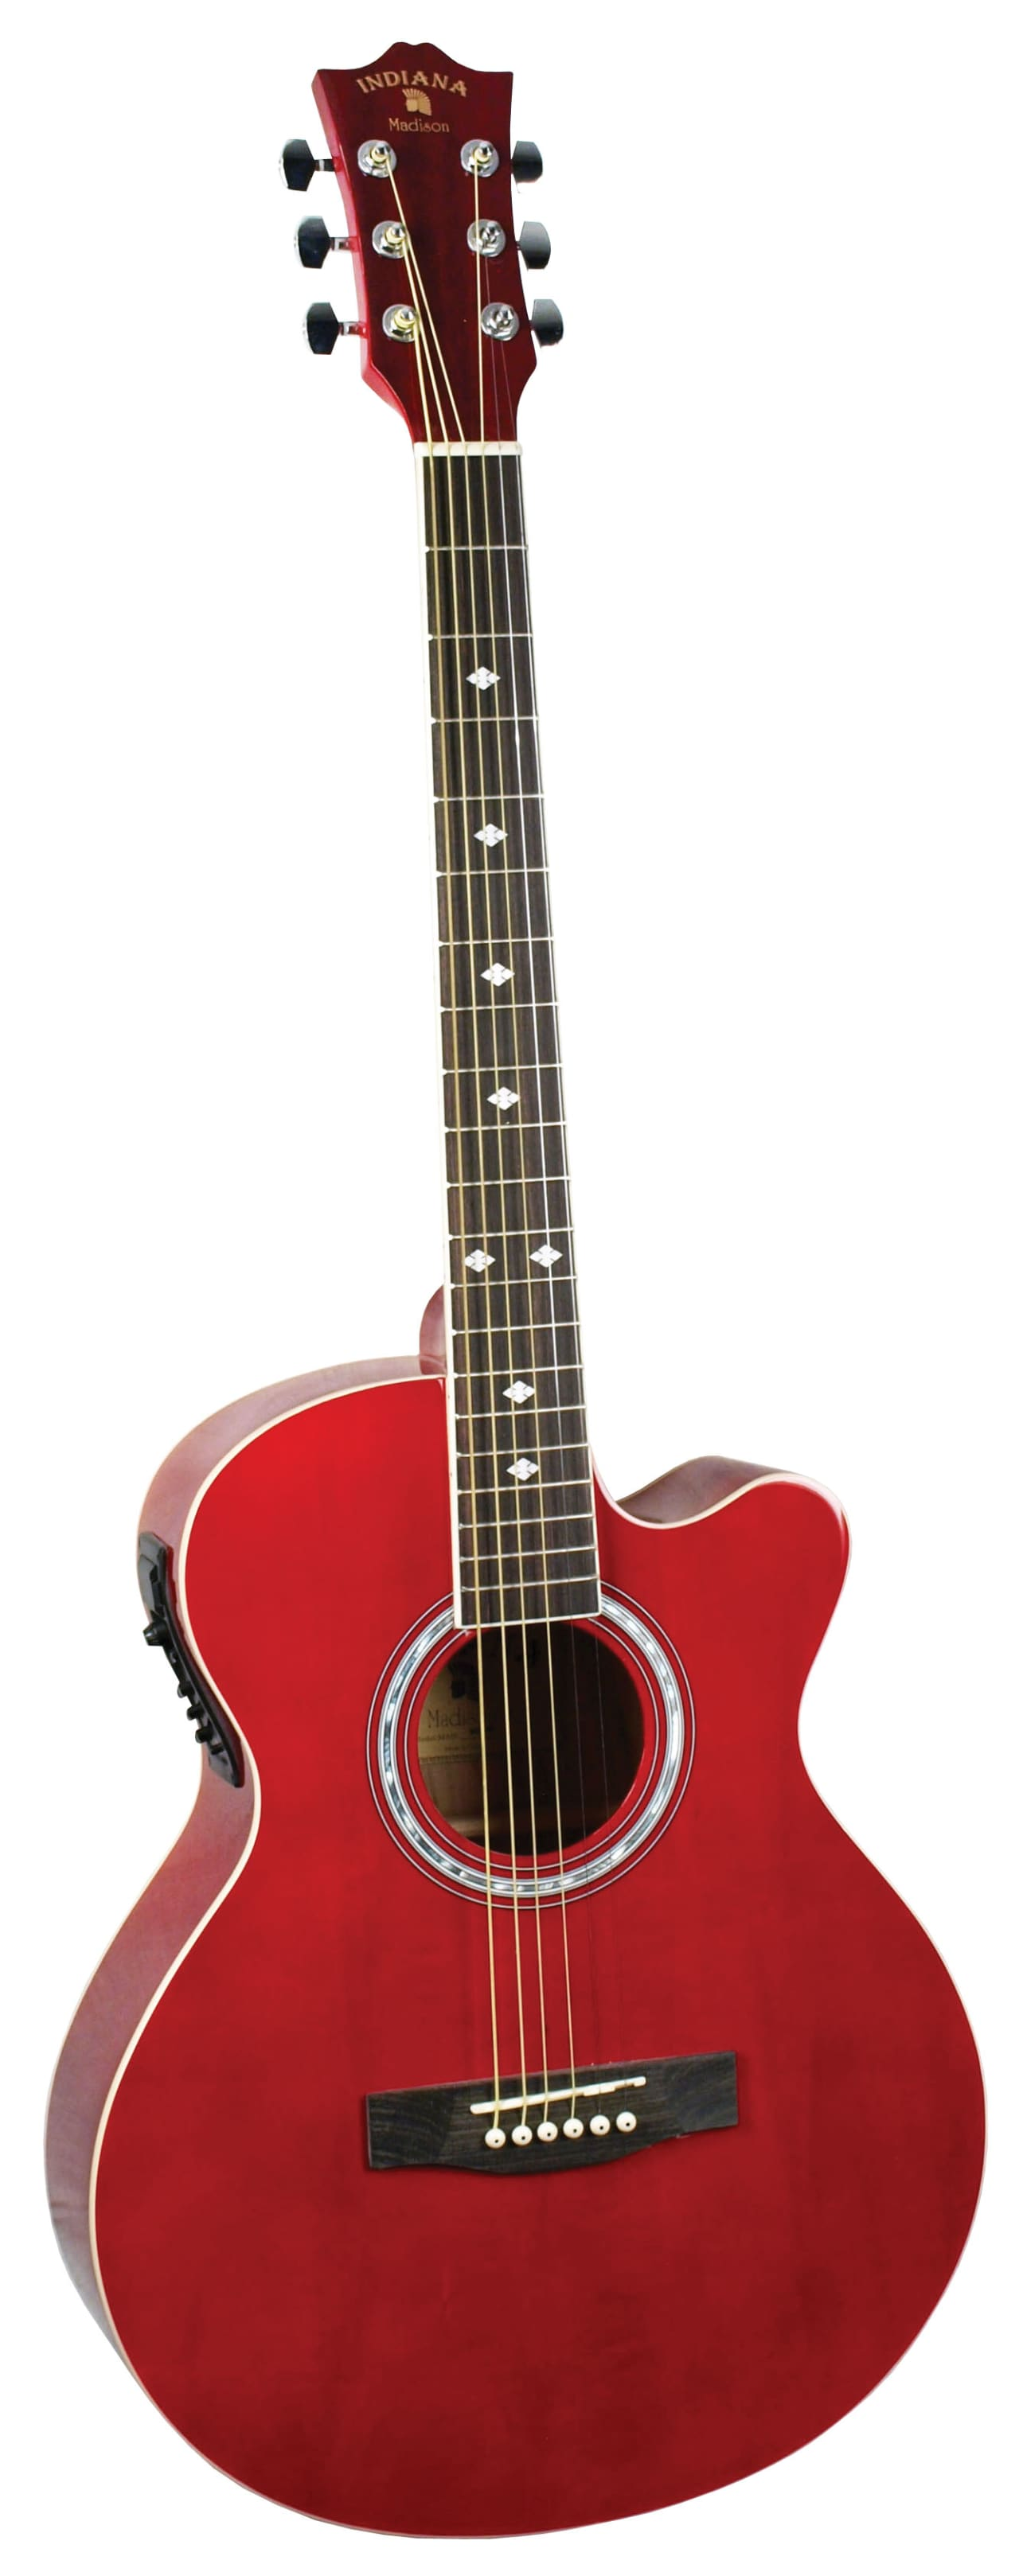 indiana mad rd madison acoustic guitar electric red reverb. Black Bedroom Furniture Sets. Home Design Ideas